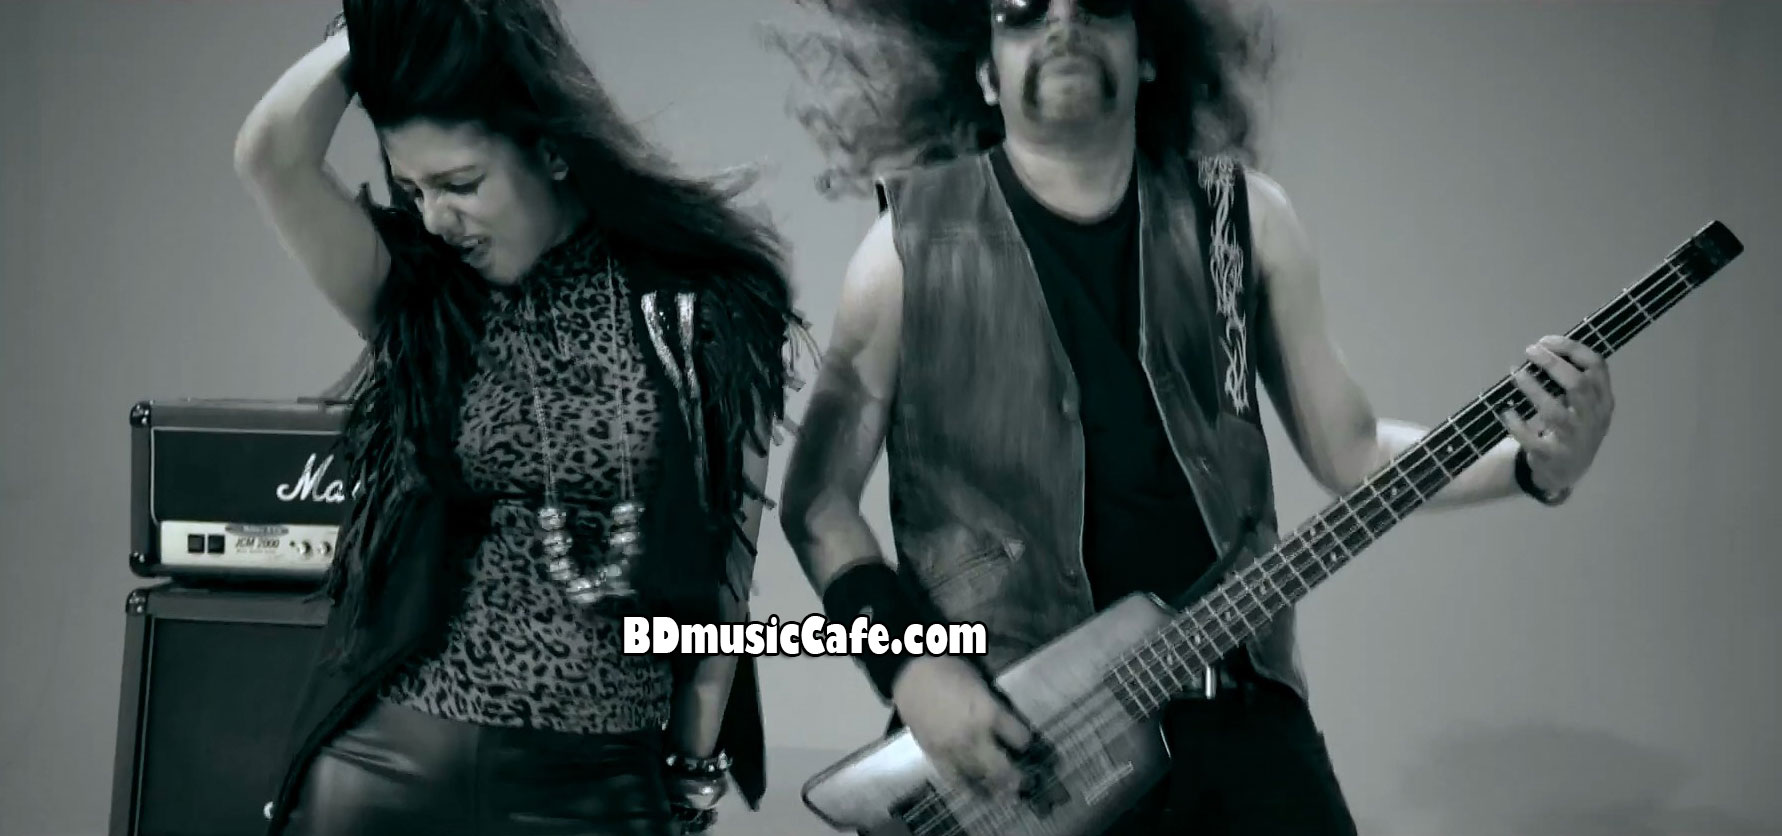 nacho-bangla-music-video-by-mila-accent-mix